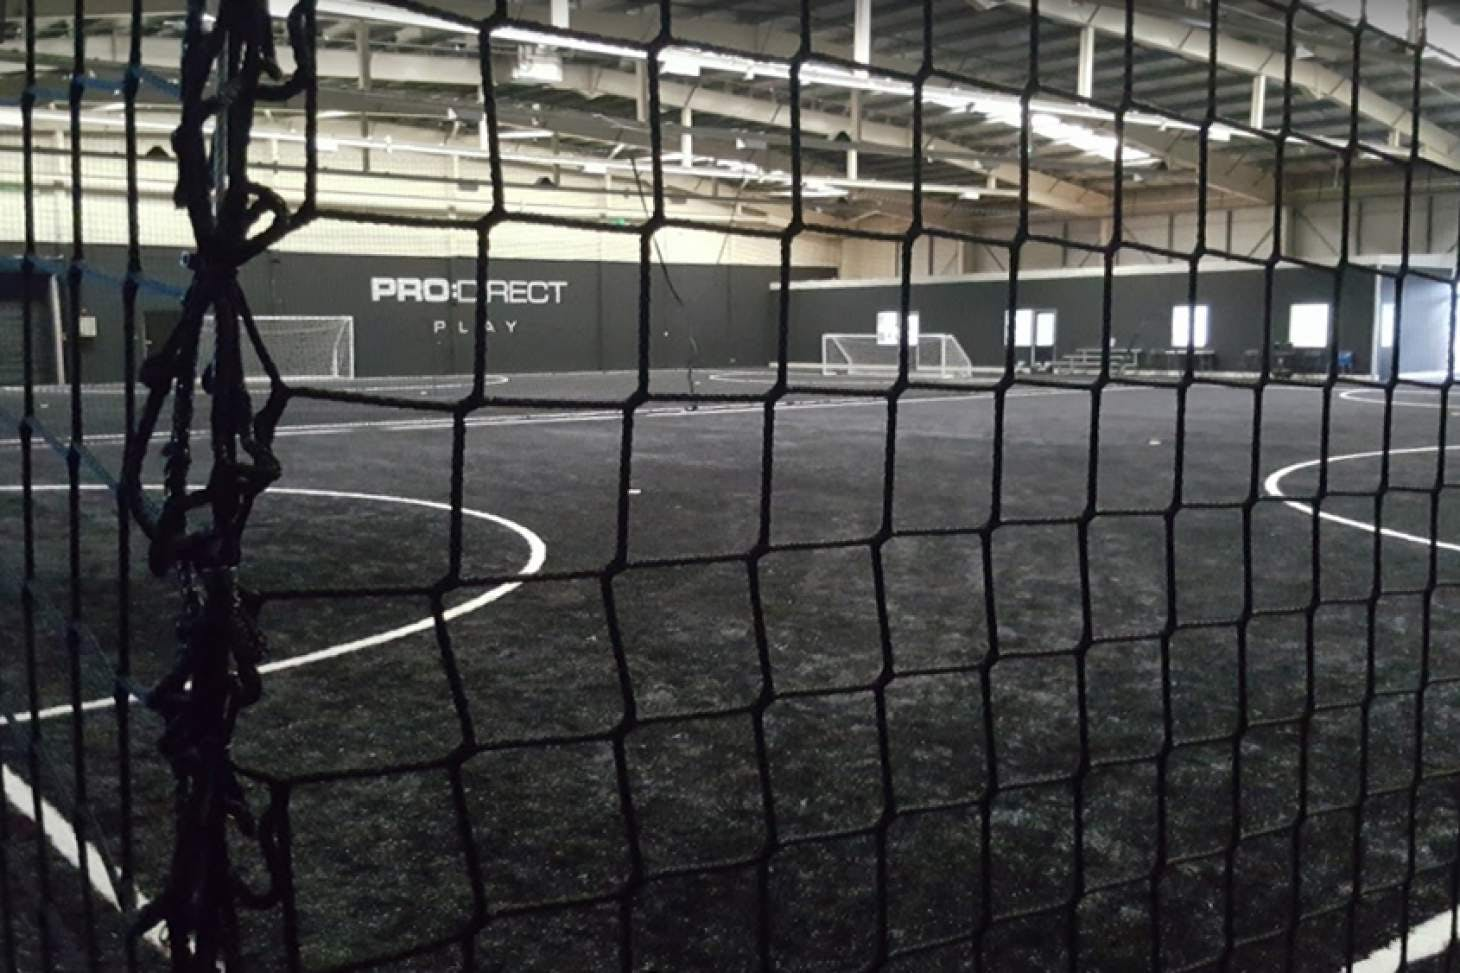 PlayFootball Birmingham 7 a side | 3G Astroturf football pitch